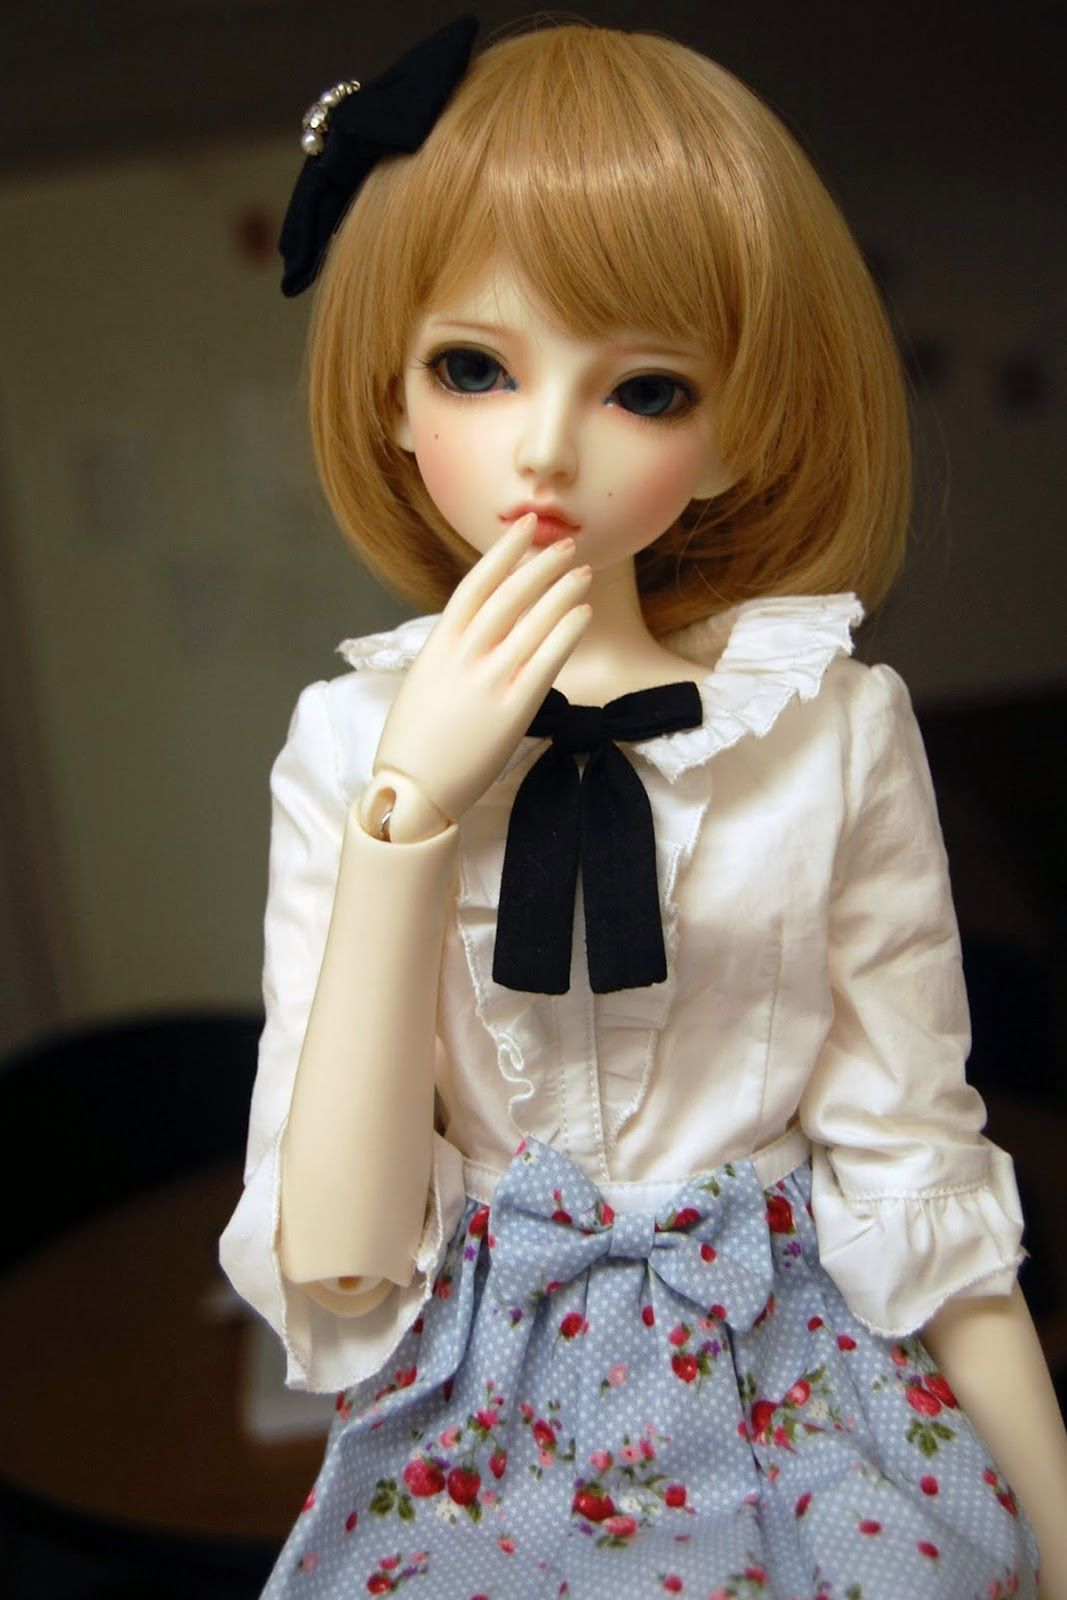 Cute Doll Hd Images Free Download : images, download, Wallpapers, Backgrounds, WallpaperAccess